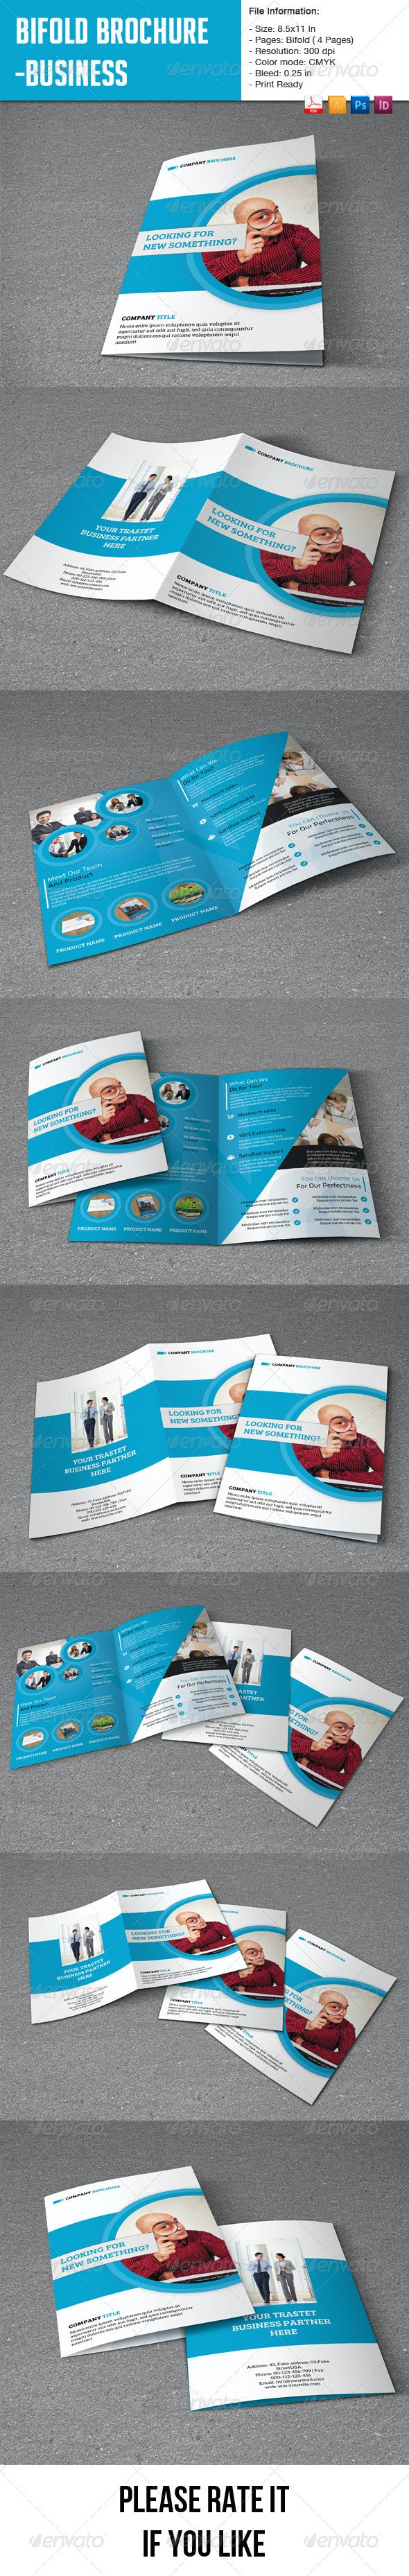 Flexible Bifold Brochure for Business-4 pages - Corporate Brochures